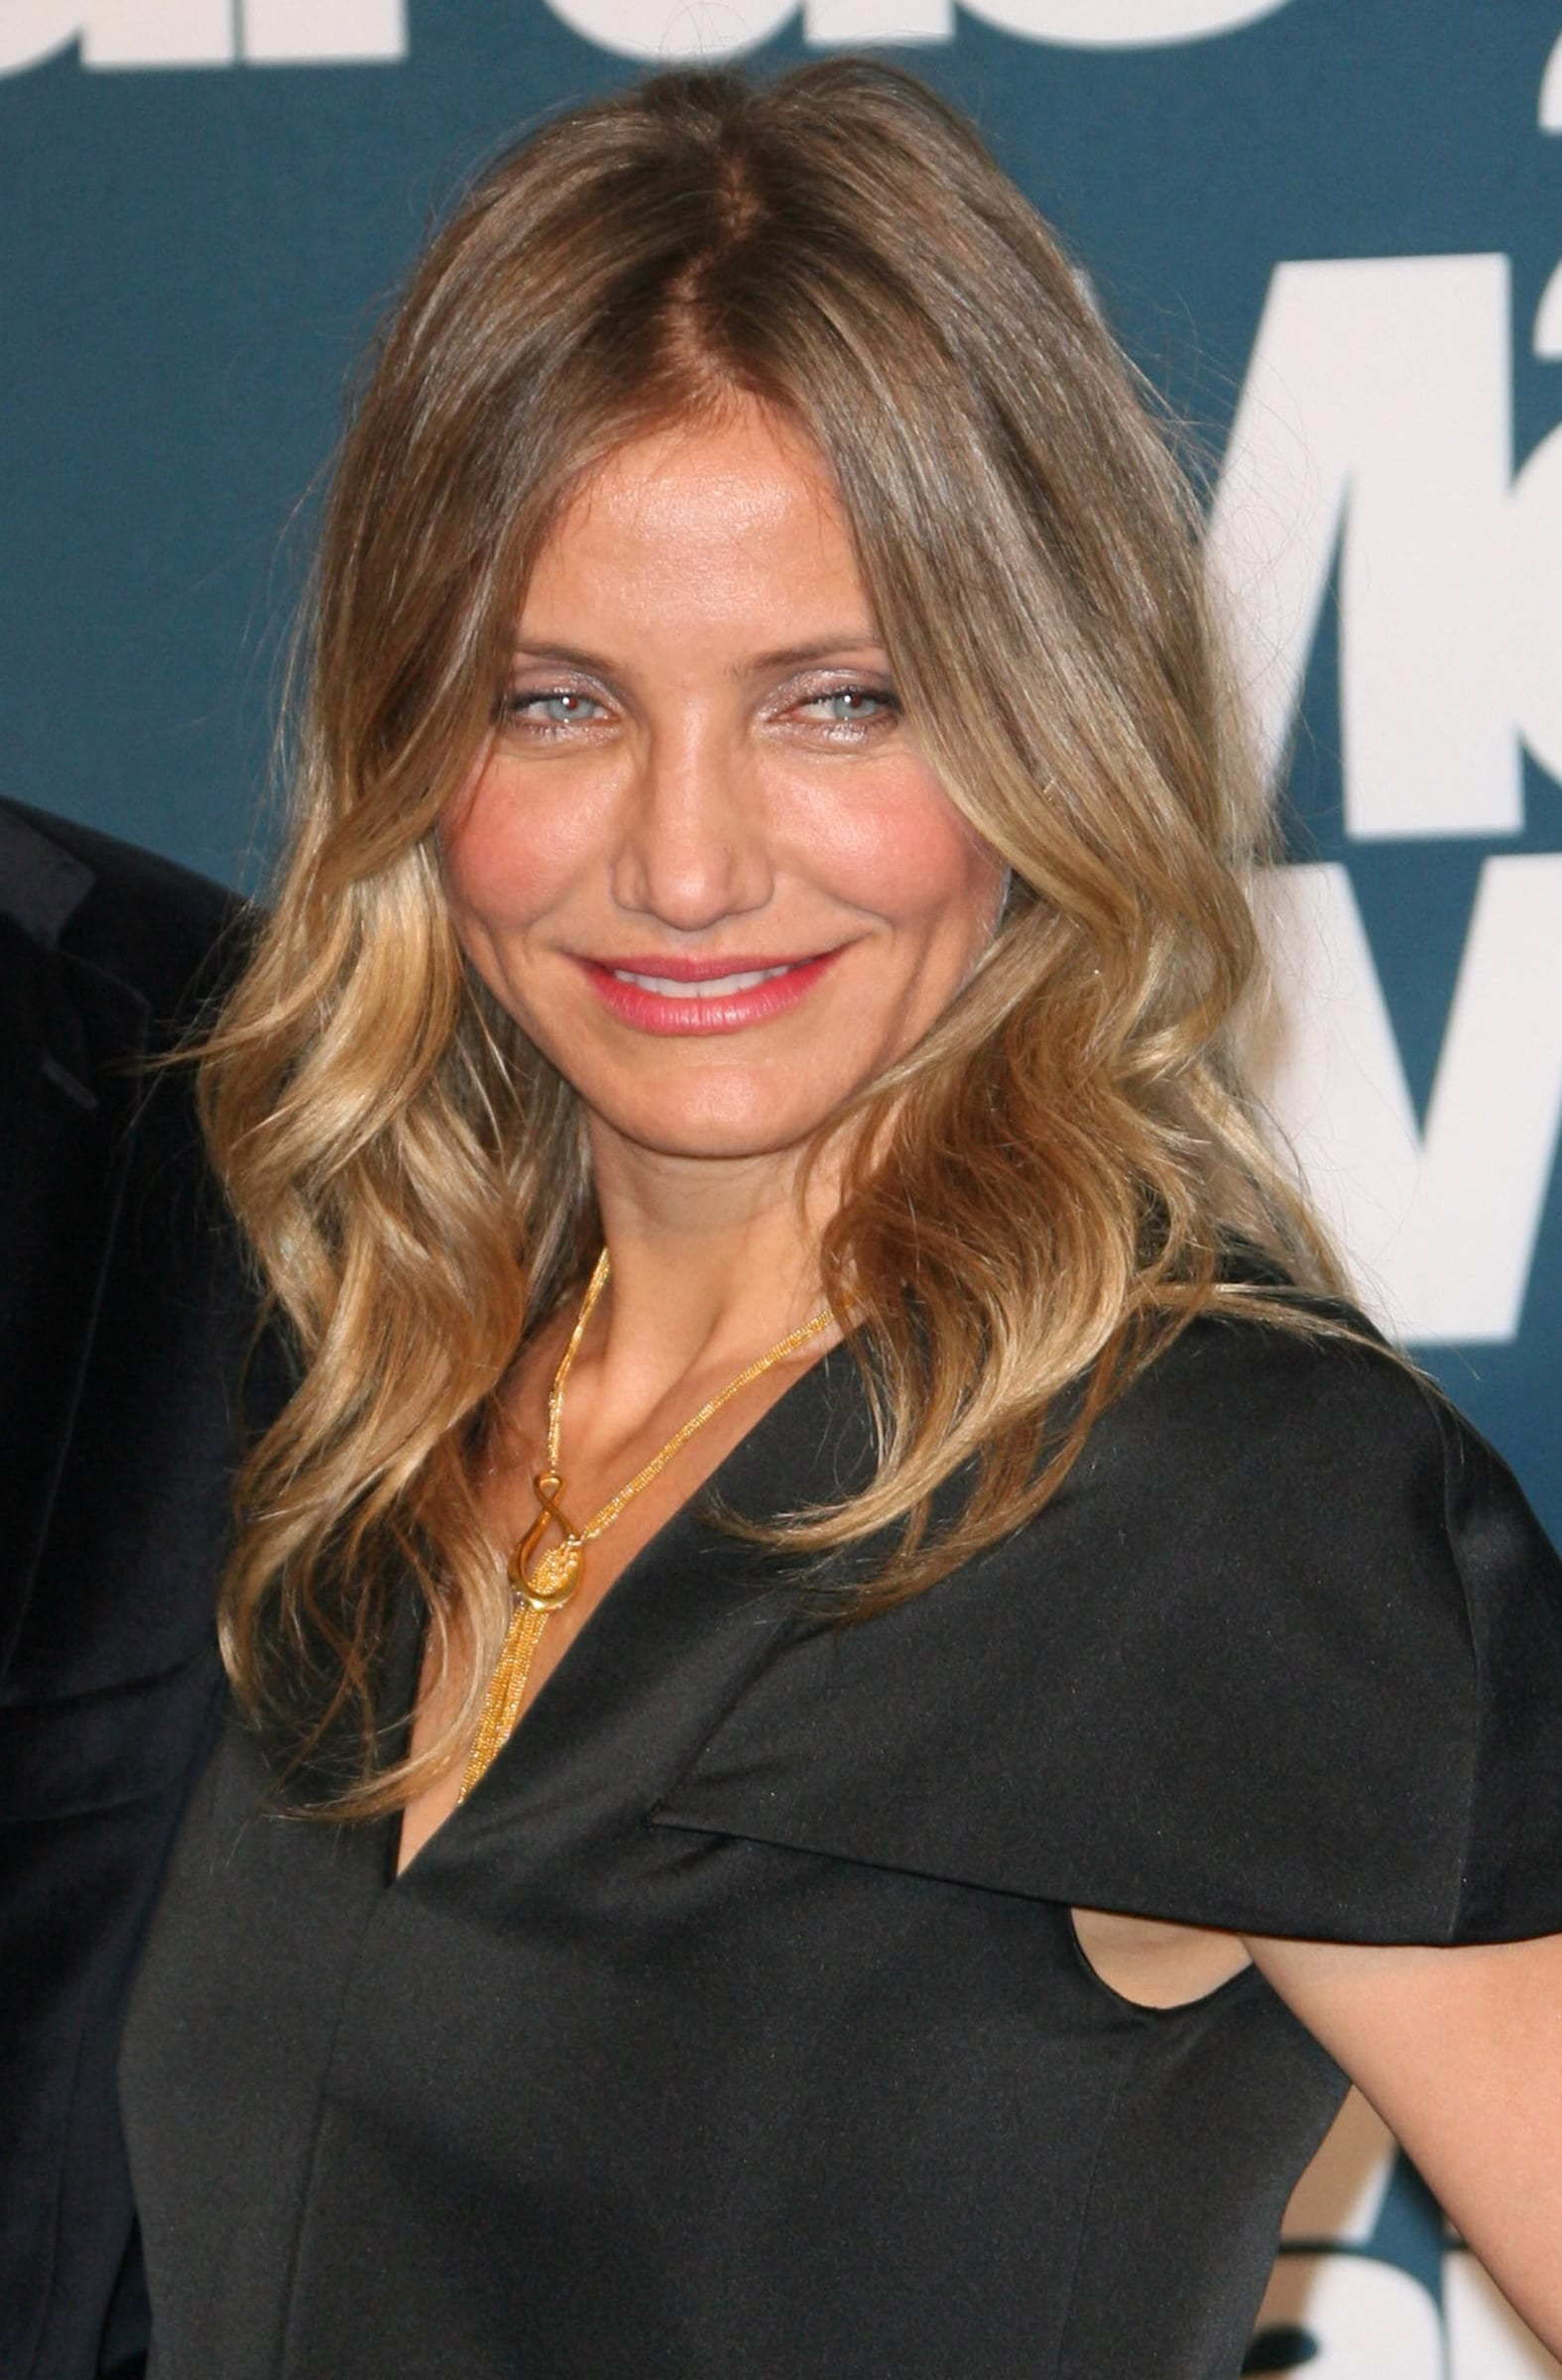 cameron diaz: engaged to benji madden! - the hollywood gossip